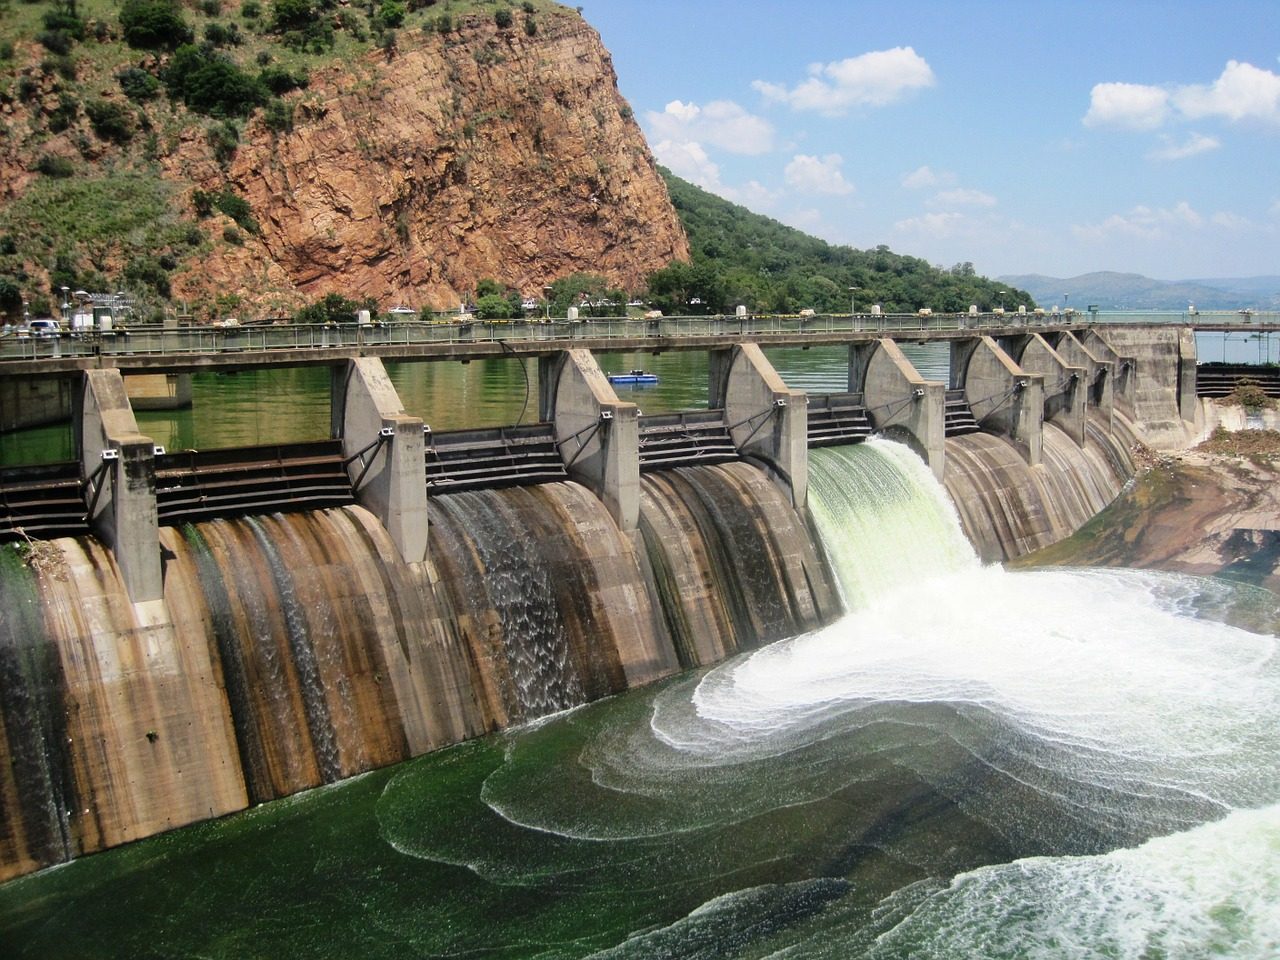 Dam removal uses drones to monitor sediment movement